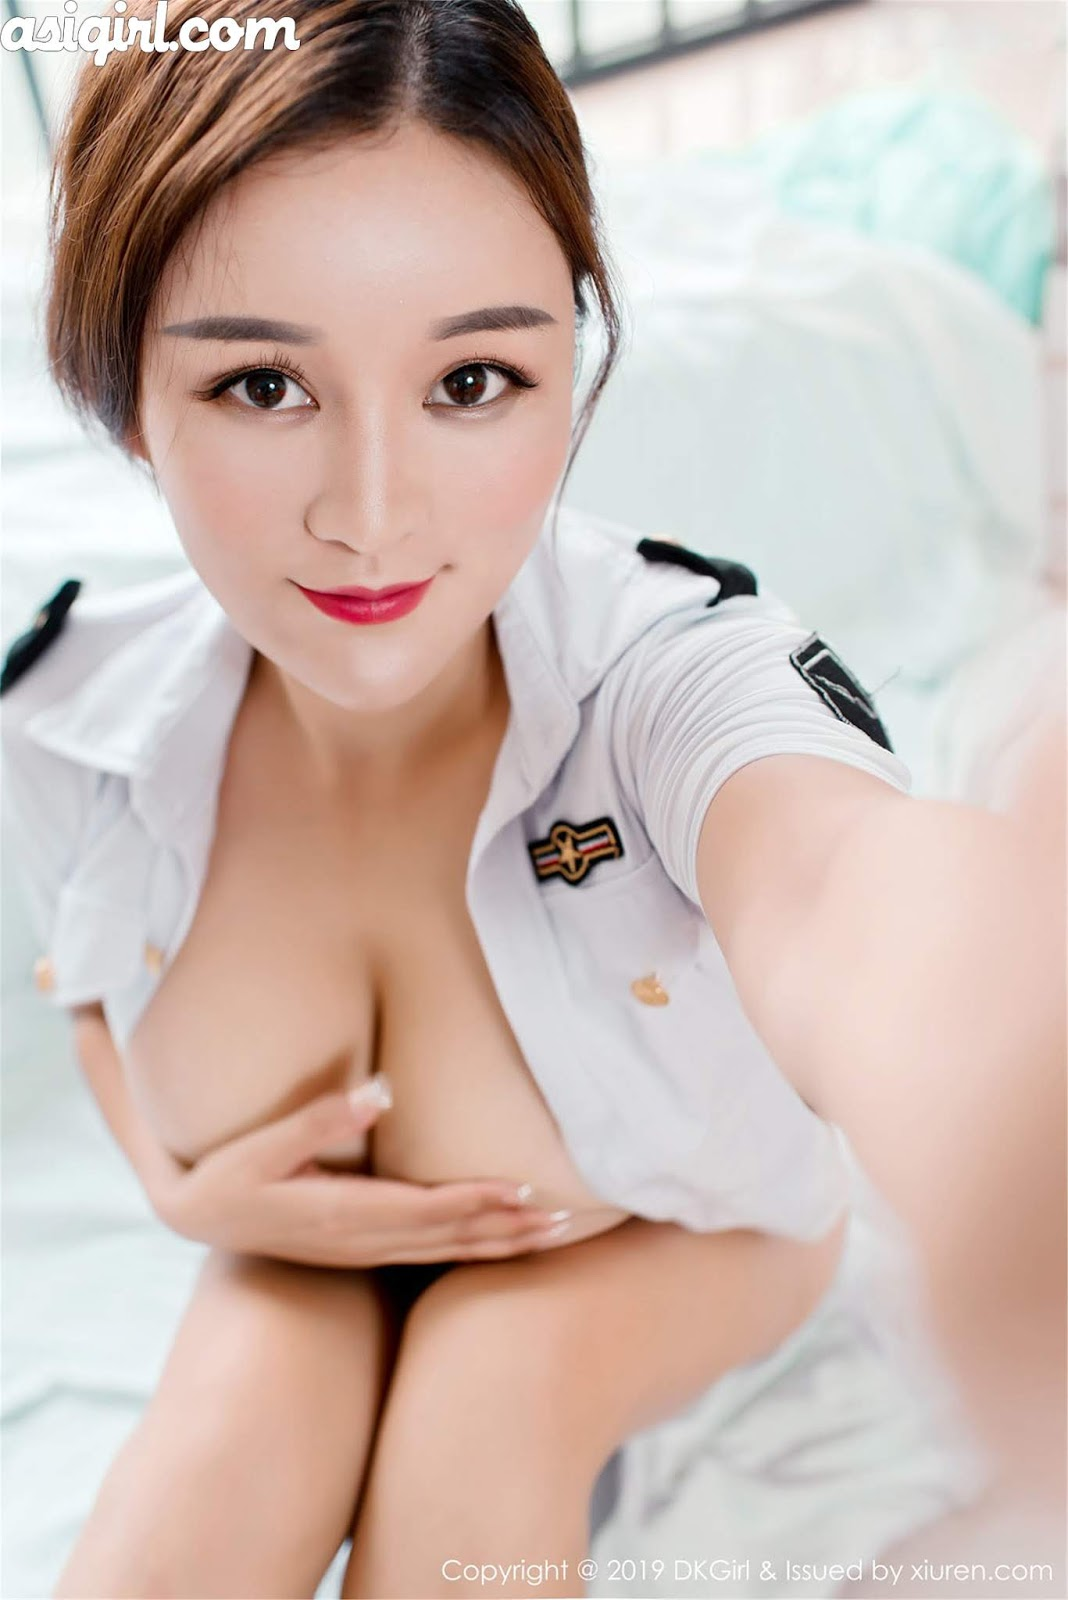 [DKGirl] 2019.06.20 VOL.107 - Asigirl.com - Download free high quality sexy stunning asian pictures